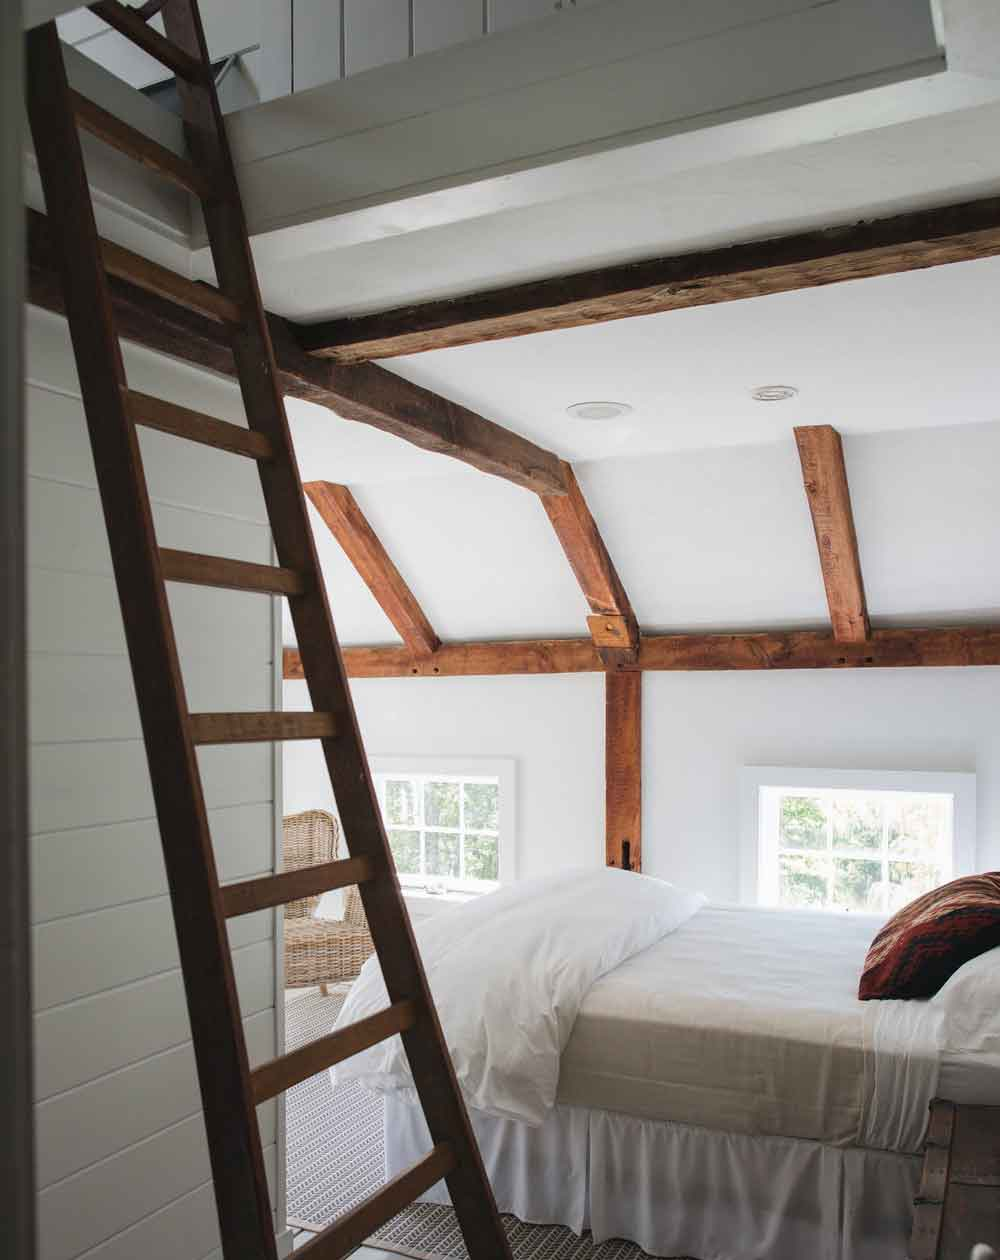 The Mary Margaret Room, which overlooks the back lawn, is located on the second floor of what was originally a small attached barn. It has a cozy loft area with two twin beds, accessible only by an antique French fruit ladder (suitable for children over age 6). This airy room features a queen bed, two twin beds, and a compact en suite bathroom with a walk-in shower.